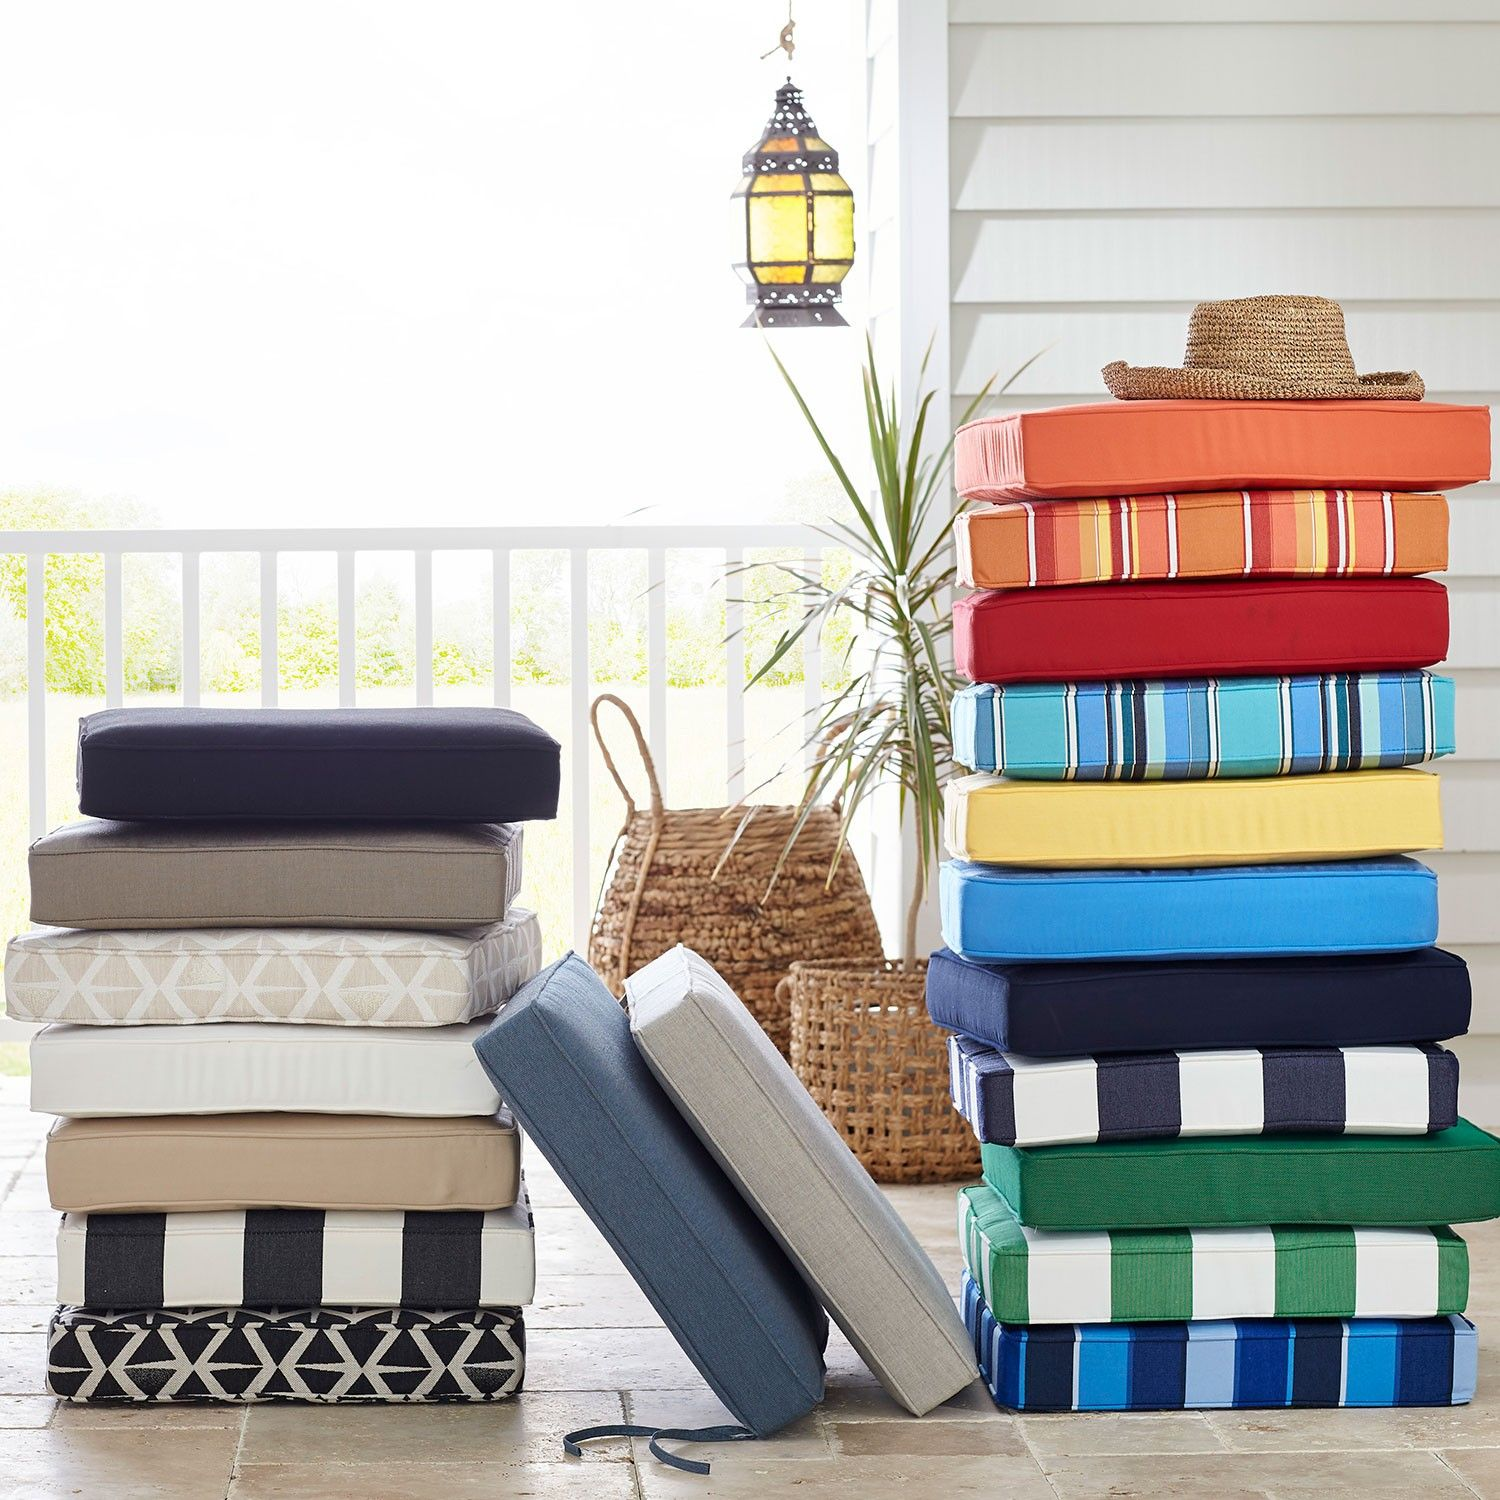 Sunbrella Outdoor Replacement Chair Cushions The Company Store 19 5x18 Or 20x Sunbrella Outdoor Cushions Outdoor Cushions And Pillows Outdoor Furnishings